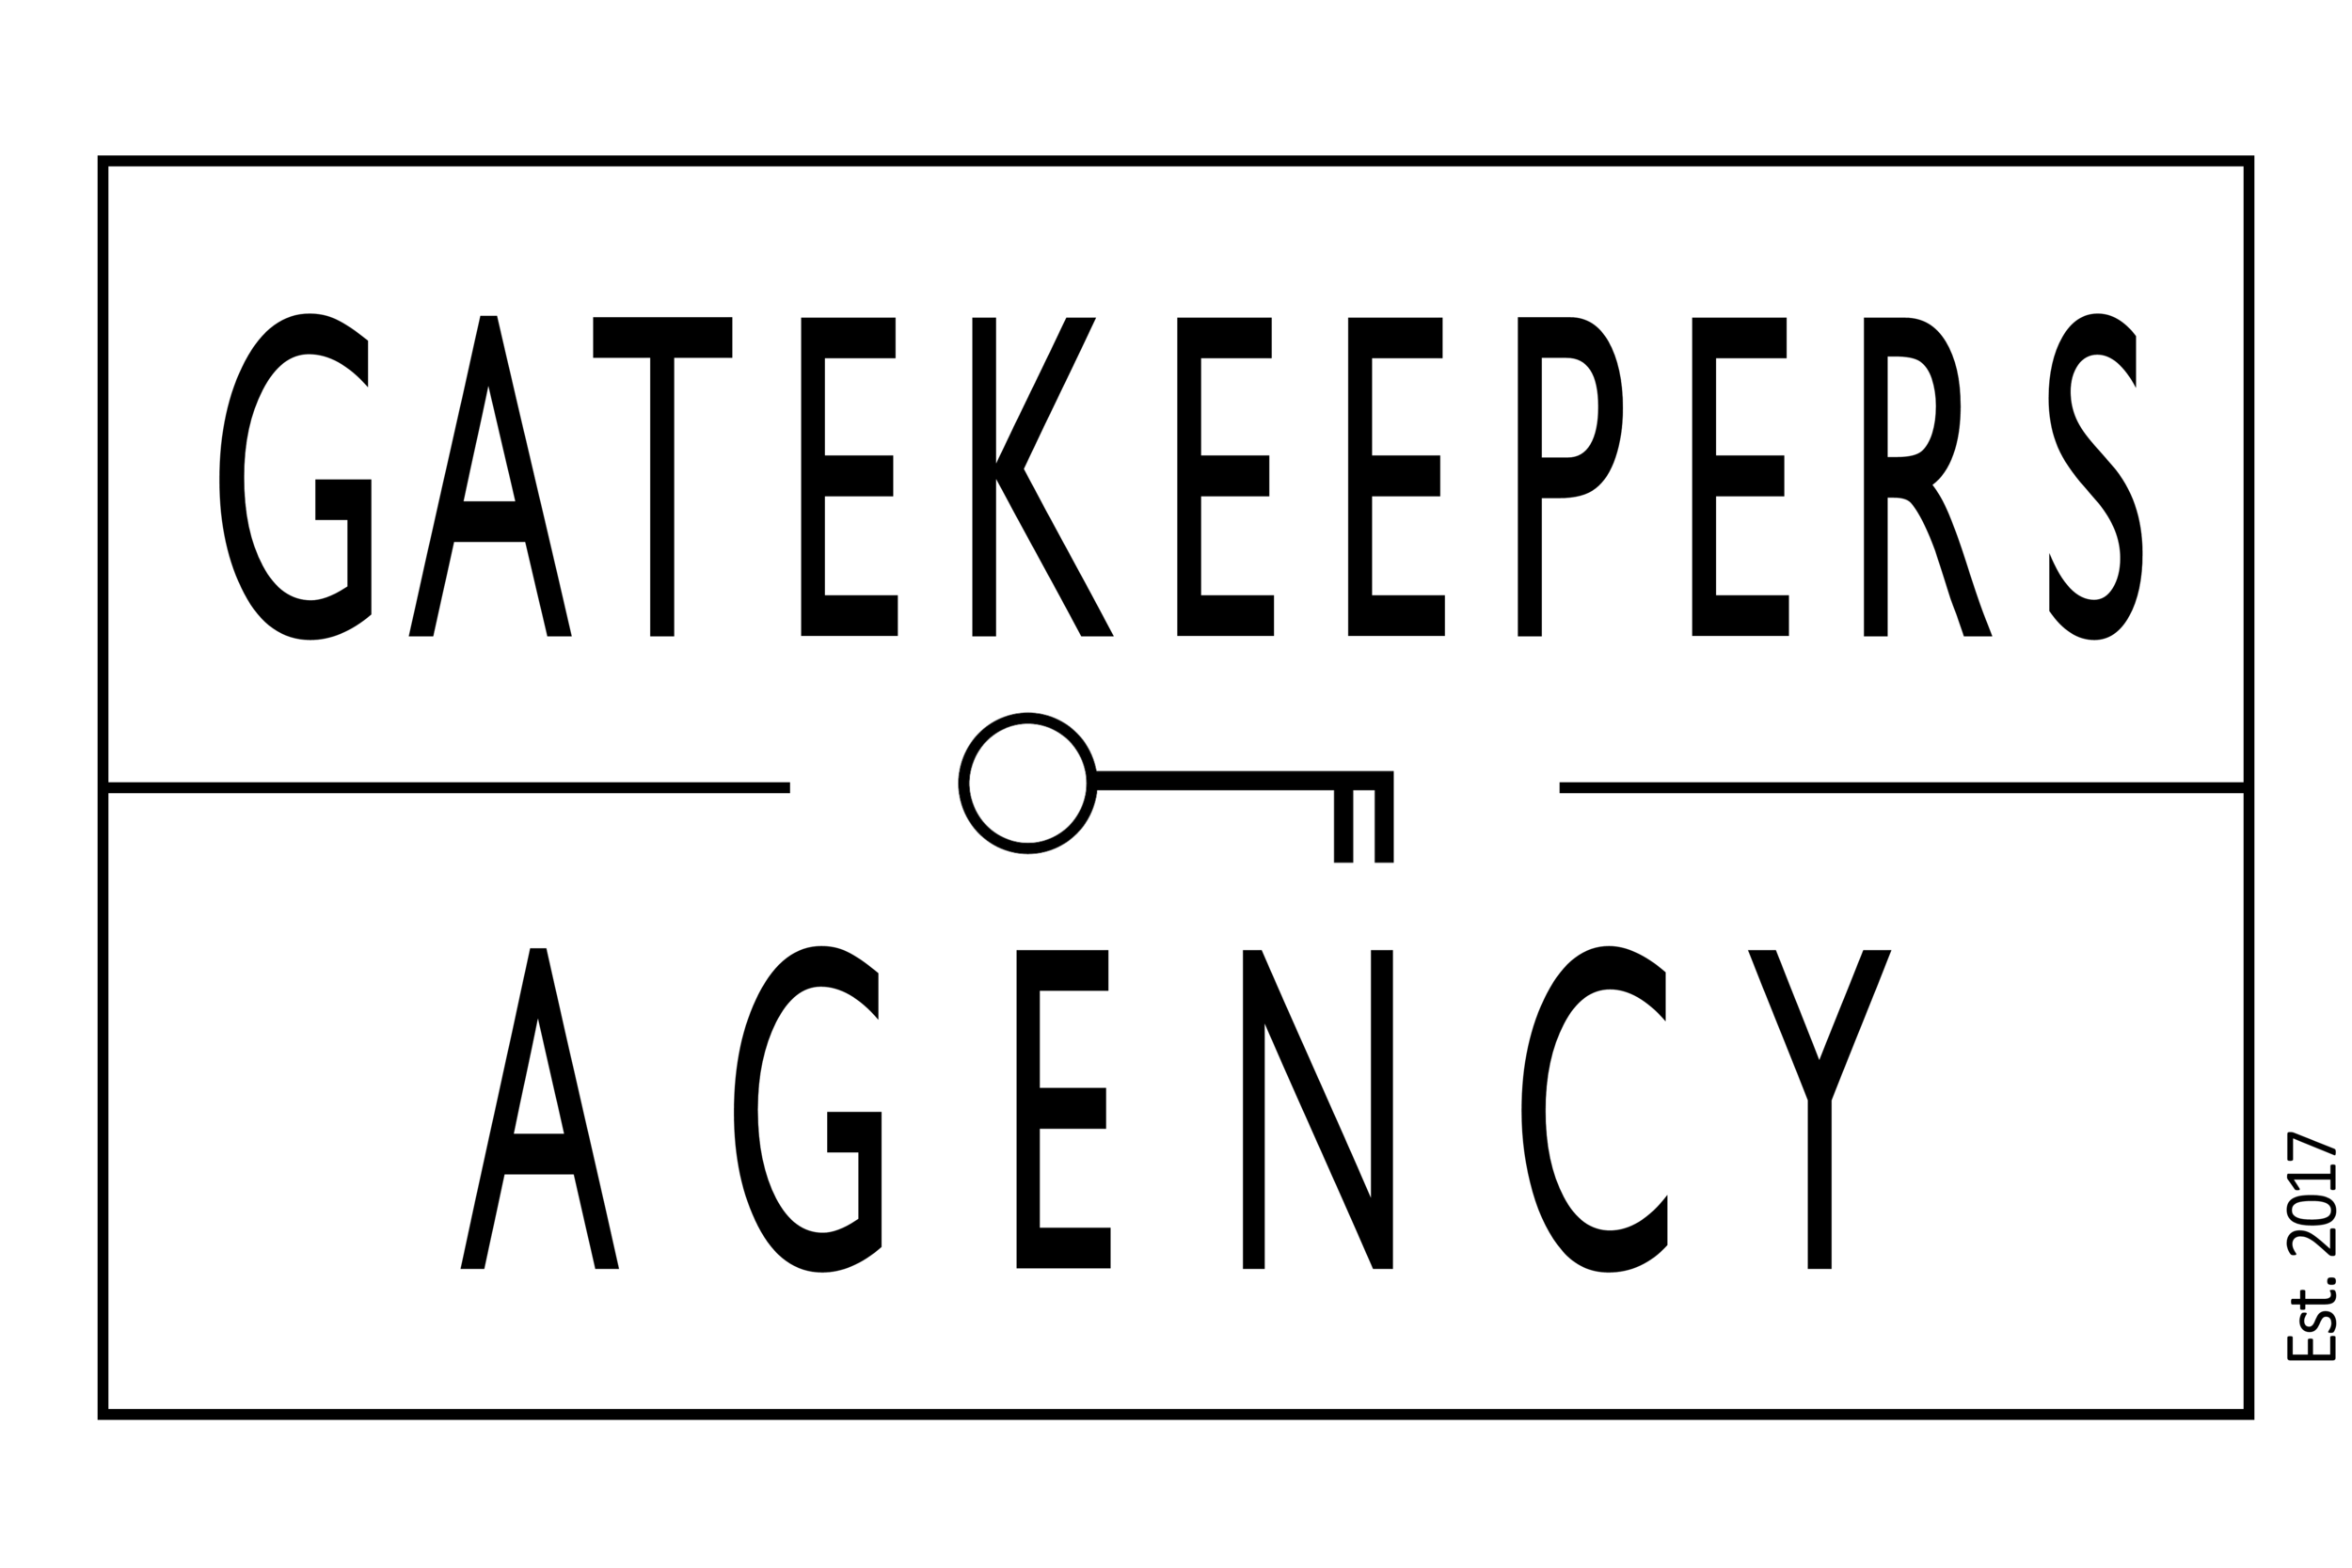 Gatekeepers Agency , conveniently located in Atlanta Midtown. We are an agency specializing in placing assistants. Here, our team of professionals understands the importance of having a great assistant. We are about empowering our assistants to dream big. By joining Gatekeepers Agency, they are taking the first step towards career growth.   Our Company Motto: No Excuses, Create Solutions   We aim to educate, on-going training, cater to our client needs and assistants. There is no limit to any specific industry as we place assistants across all industries. As a Gatekeeper, you have the responsibility of being the ears and eyes to your client. We advocate for entrepreneurship for each assistant. Gatekeepers Agency will be the place for the small business owner. Every owner should experience having an assistant to help push forth their day-to-day agenda. It's the first hire you want to make when building your team.